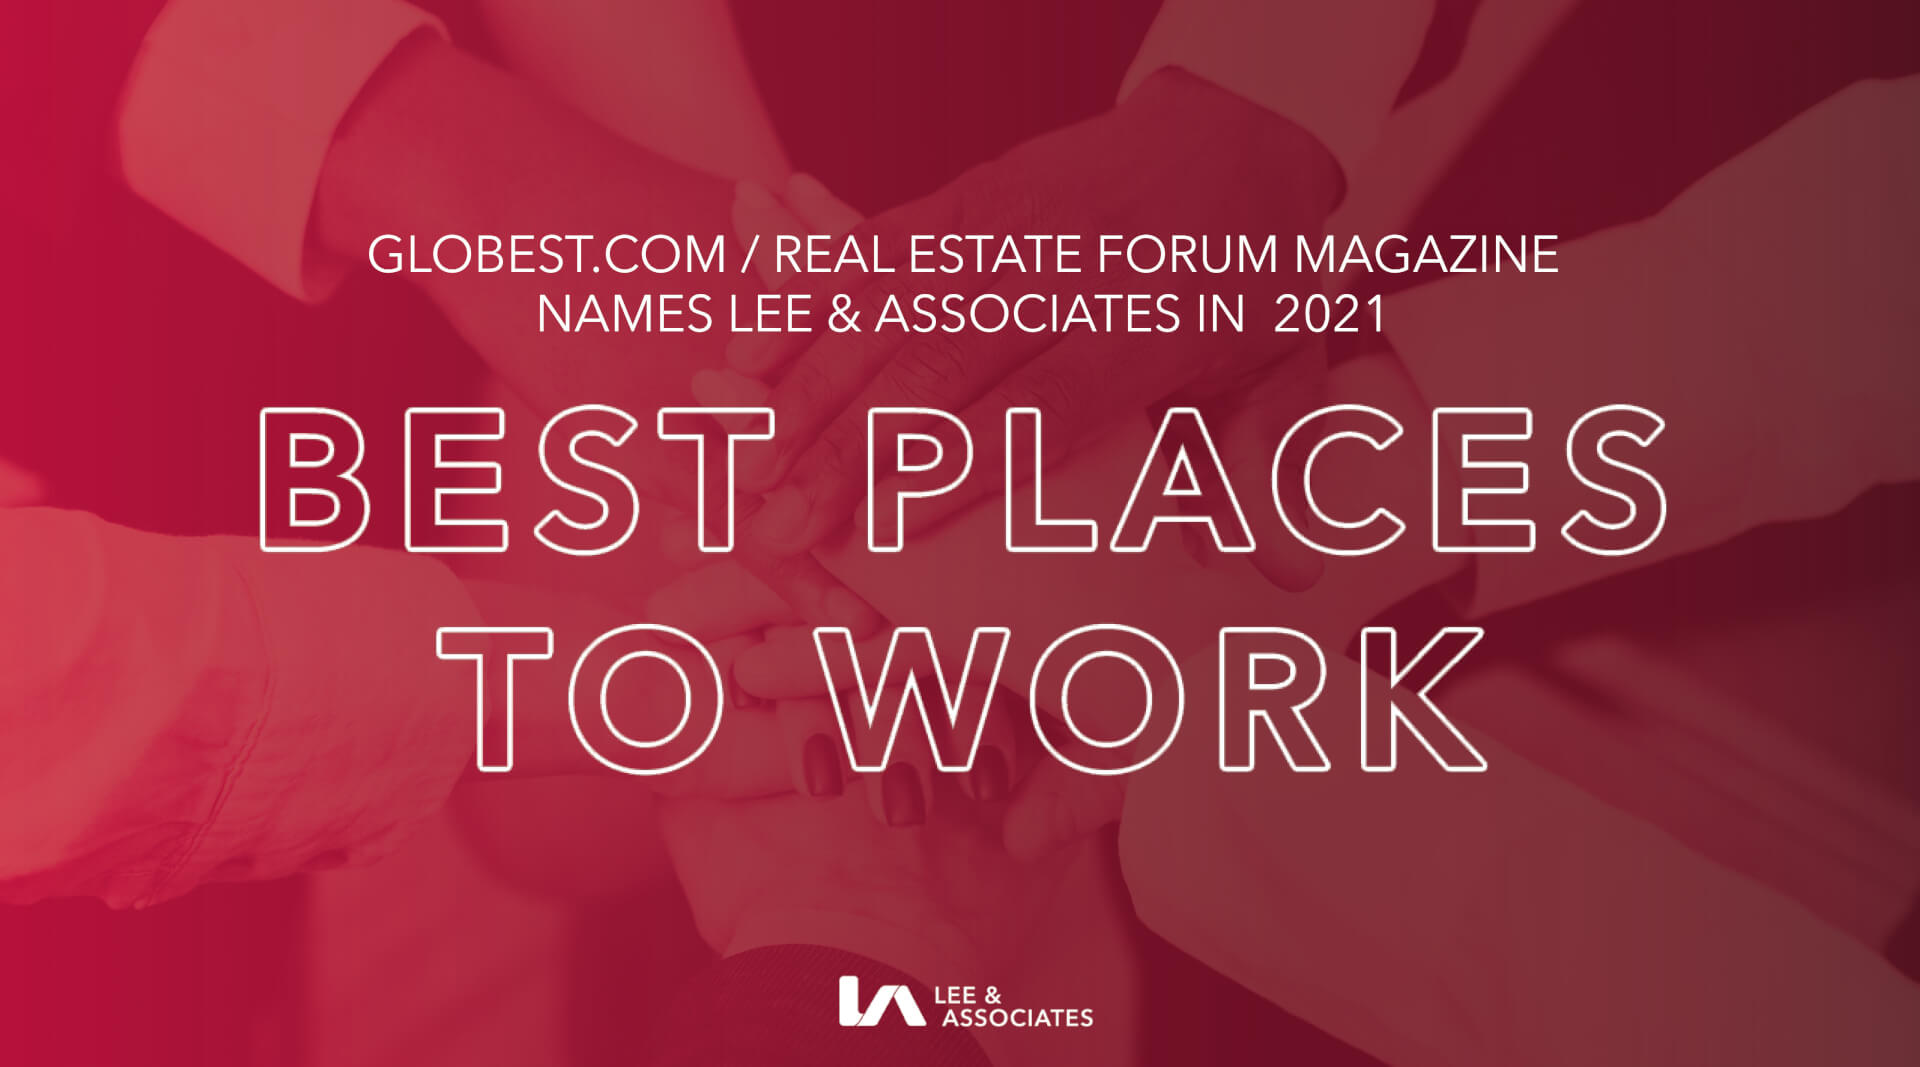 Lee & Associates Named in Globest 2021 Best Places to Work